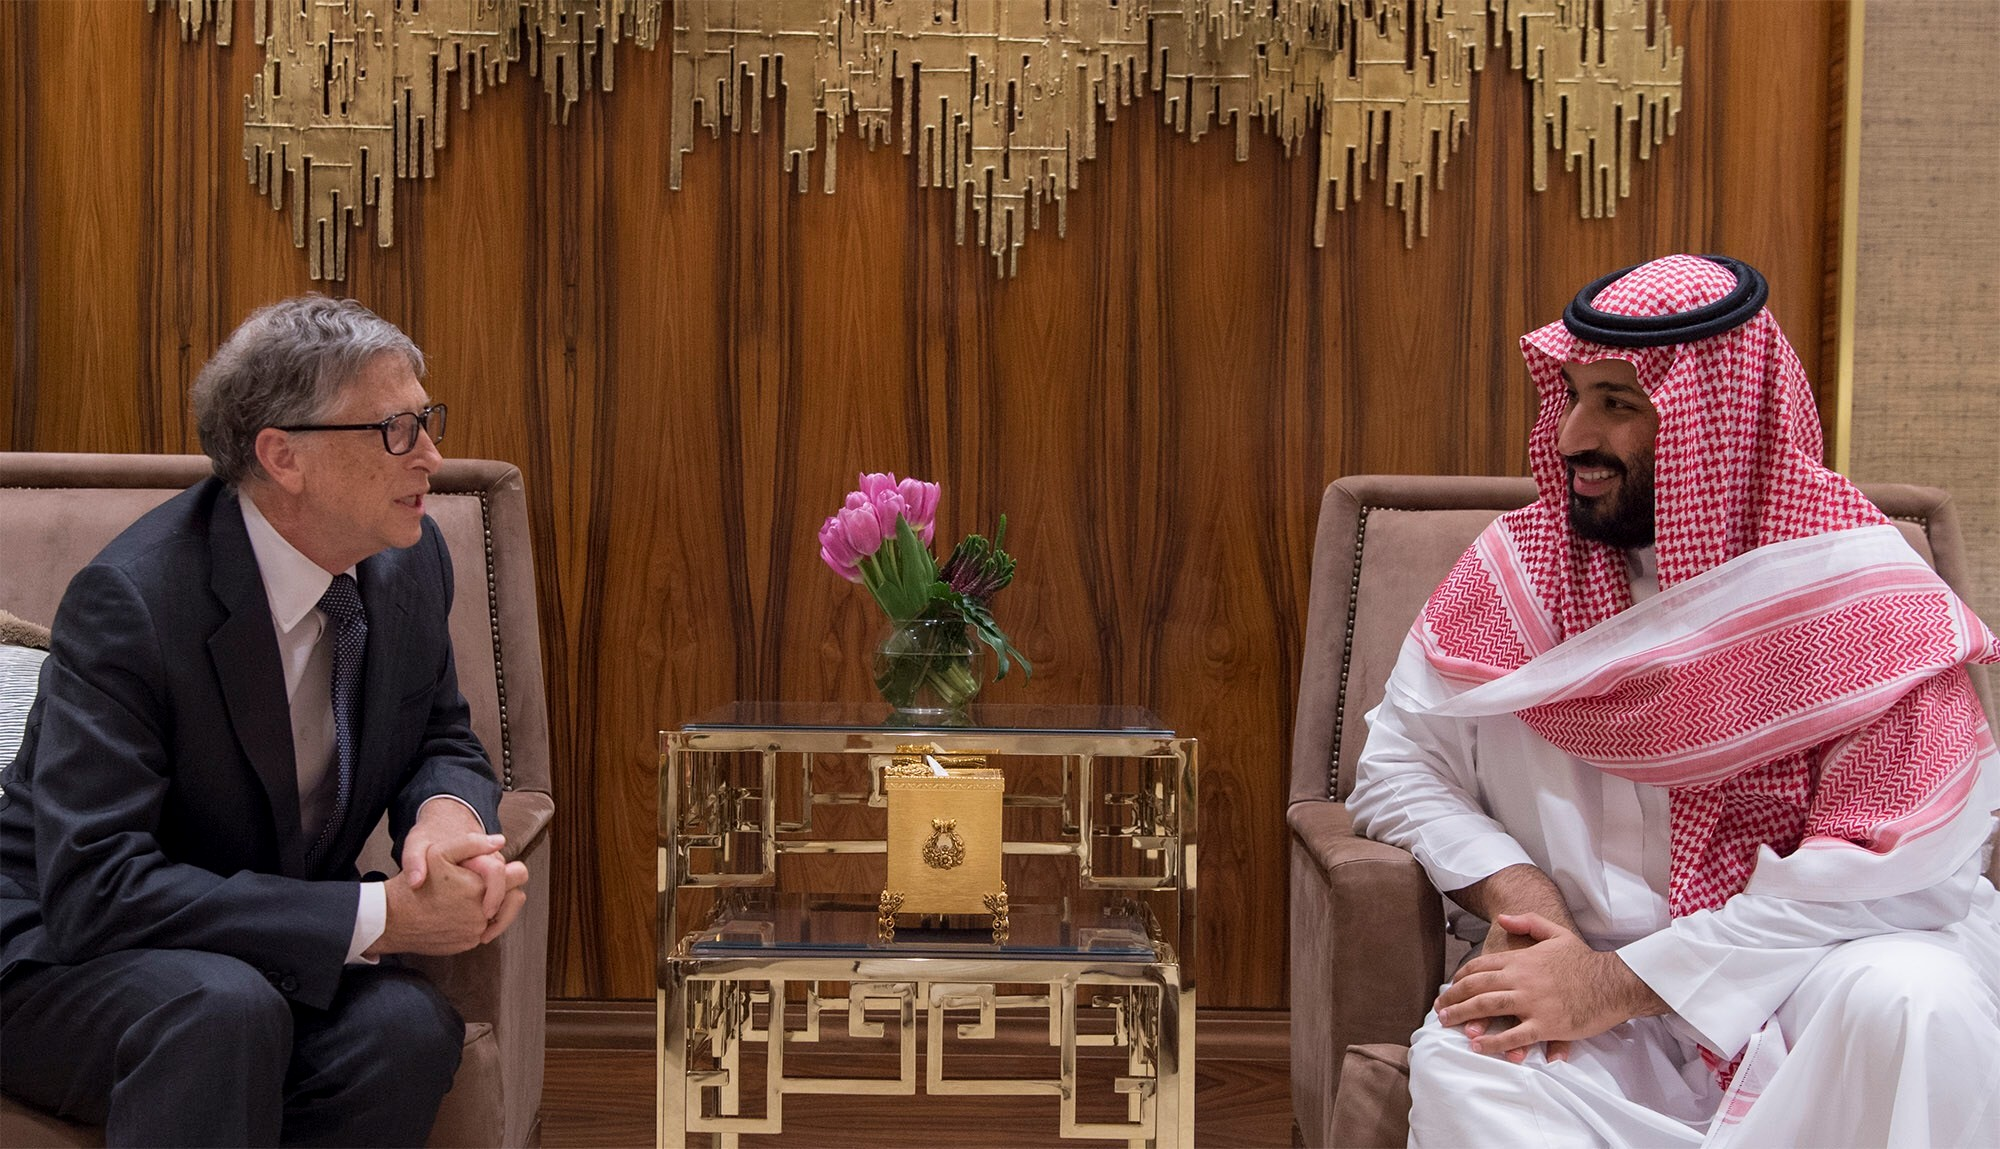 Crown Prince of Saudi Arabia Mohammad bin Salman (R) meets with Microsoft founder Bill Gates (L) in Riyadh, Saudi Arabia